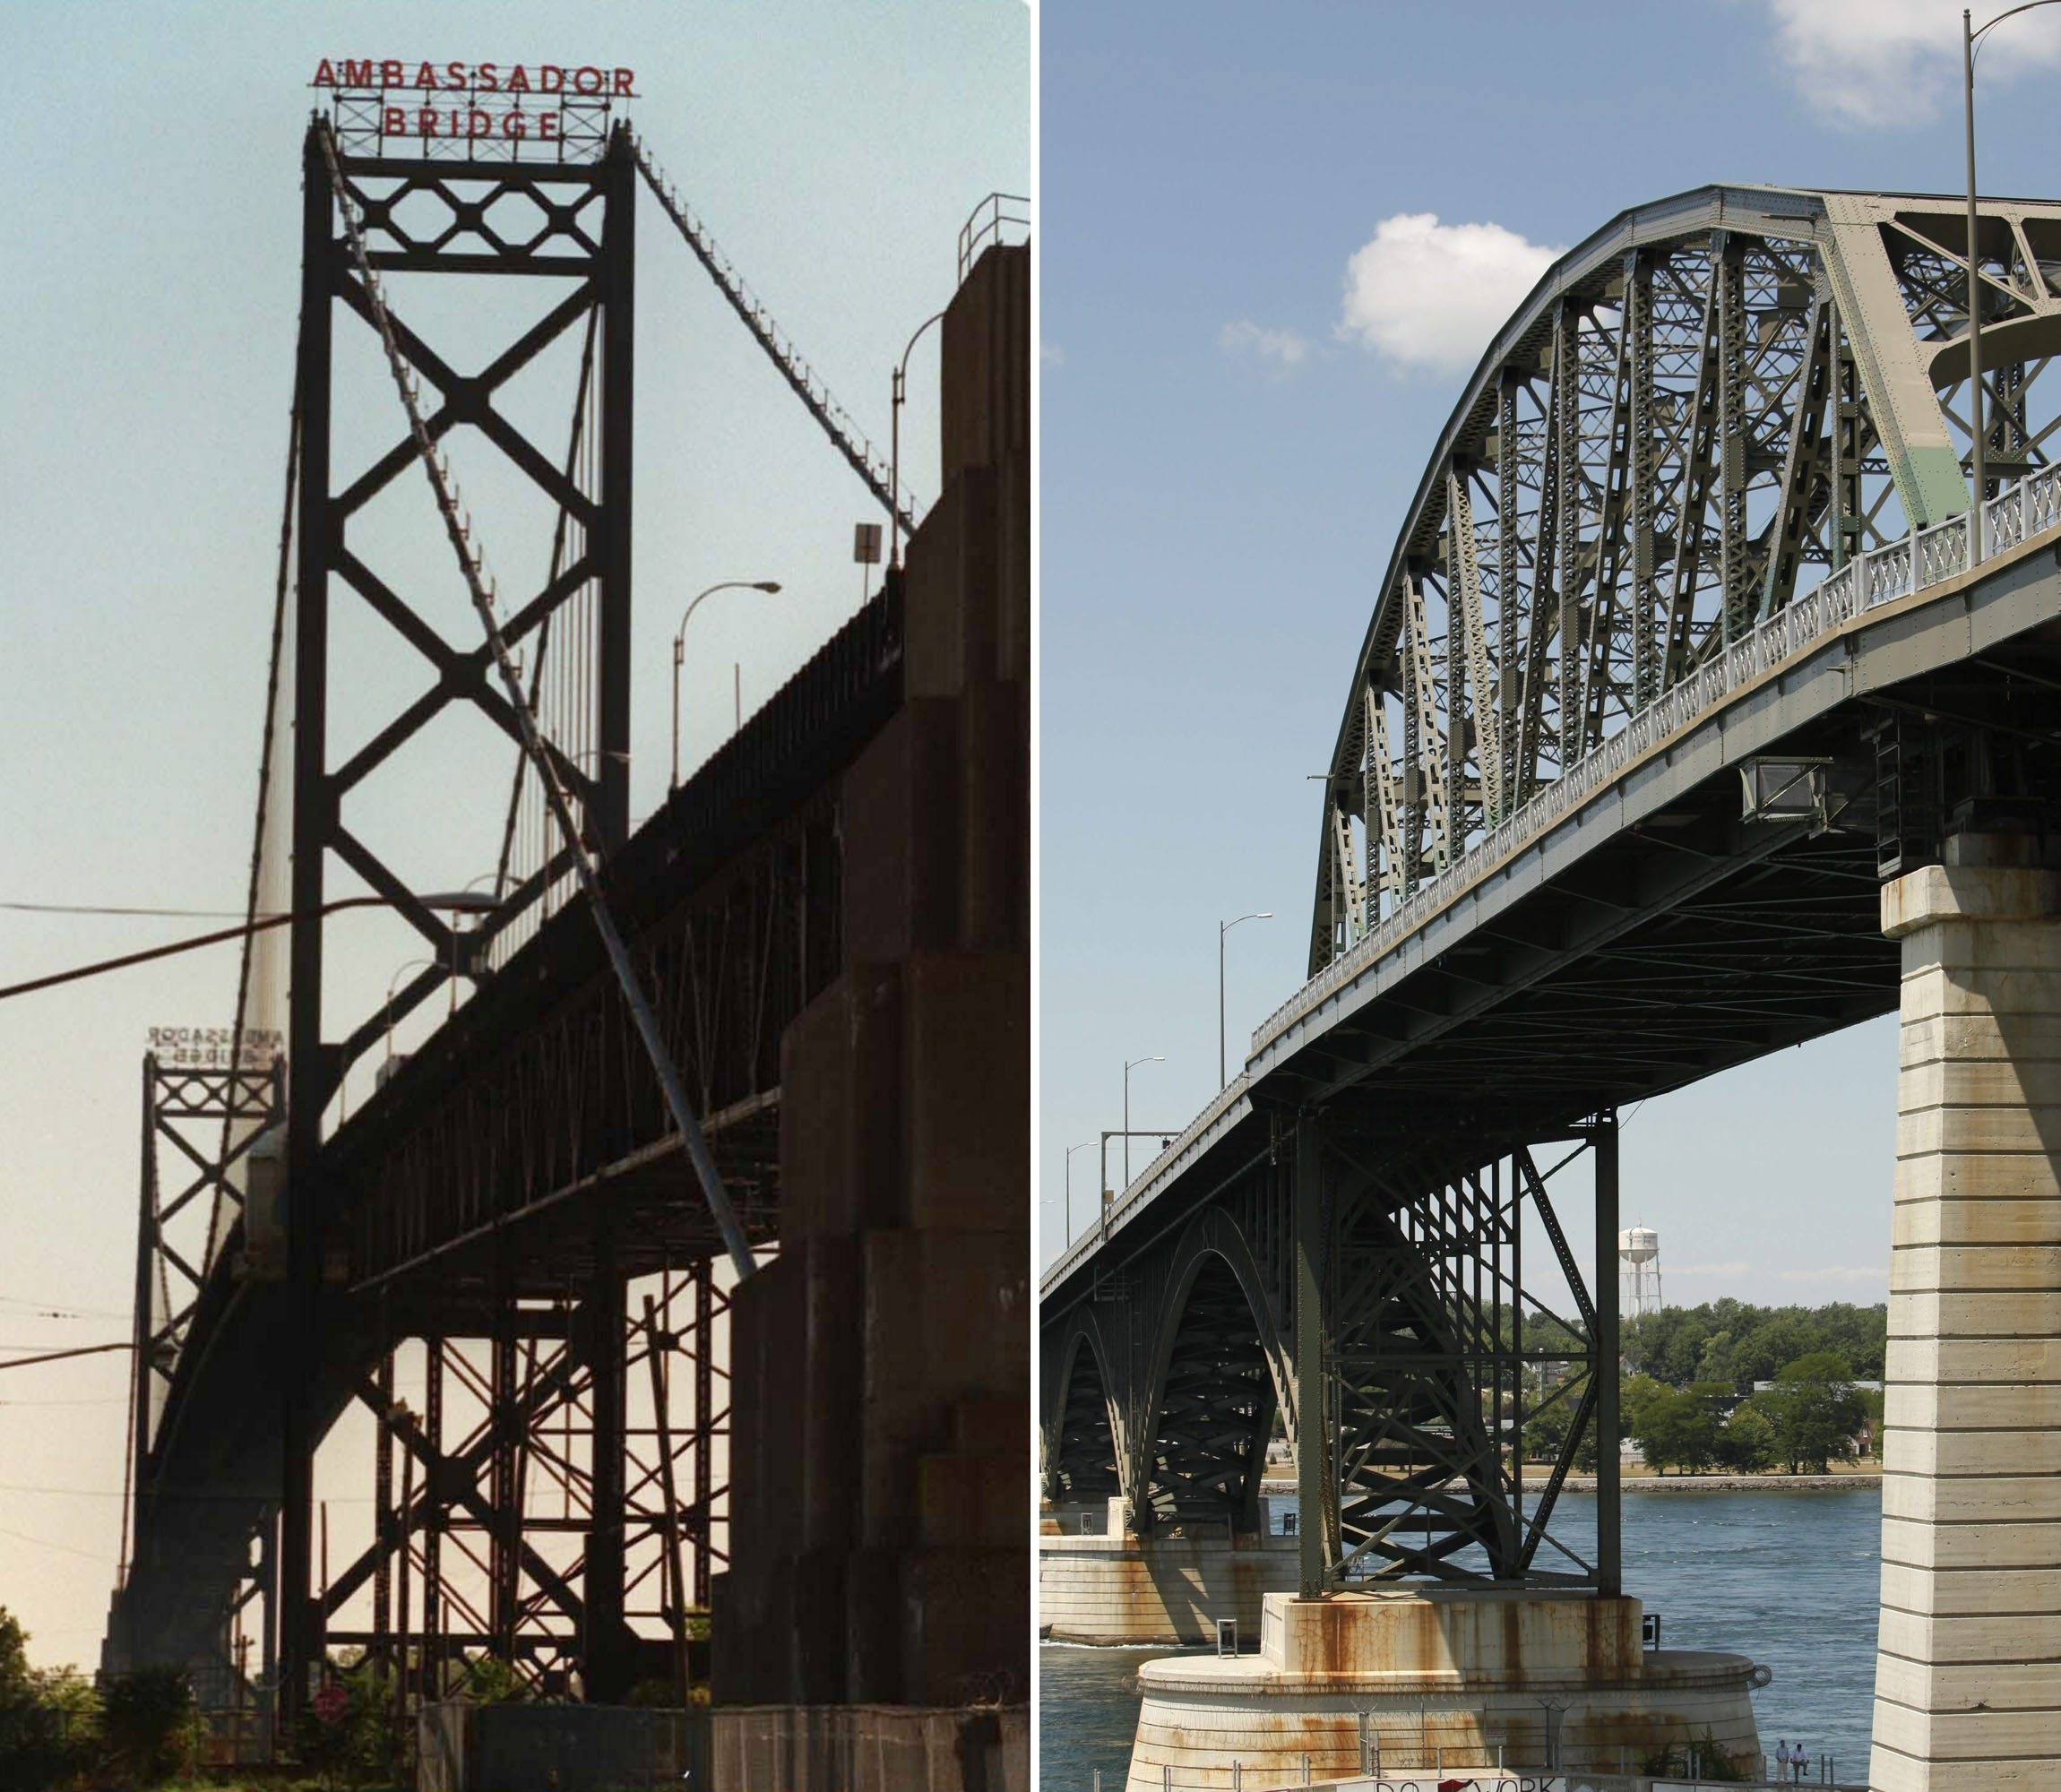 The round-trip passenger toll for the Ambassador Bridge that connects Detroit and Windsor, Ont., is $9.50 compared with the toll for the Peace Bridge, which is $2.70.